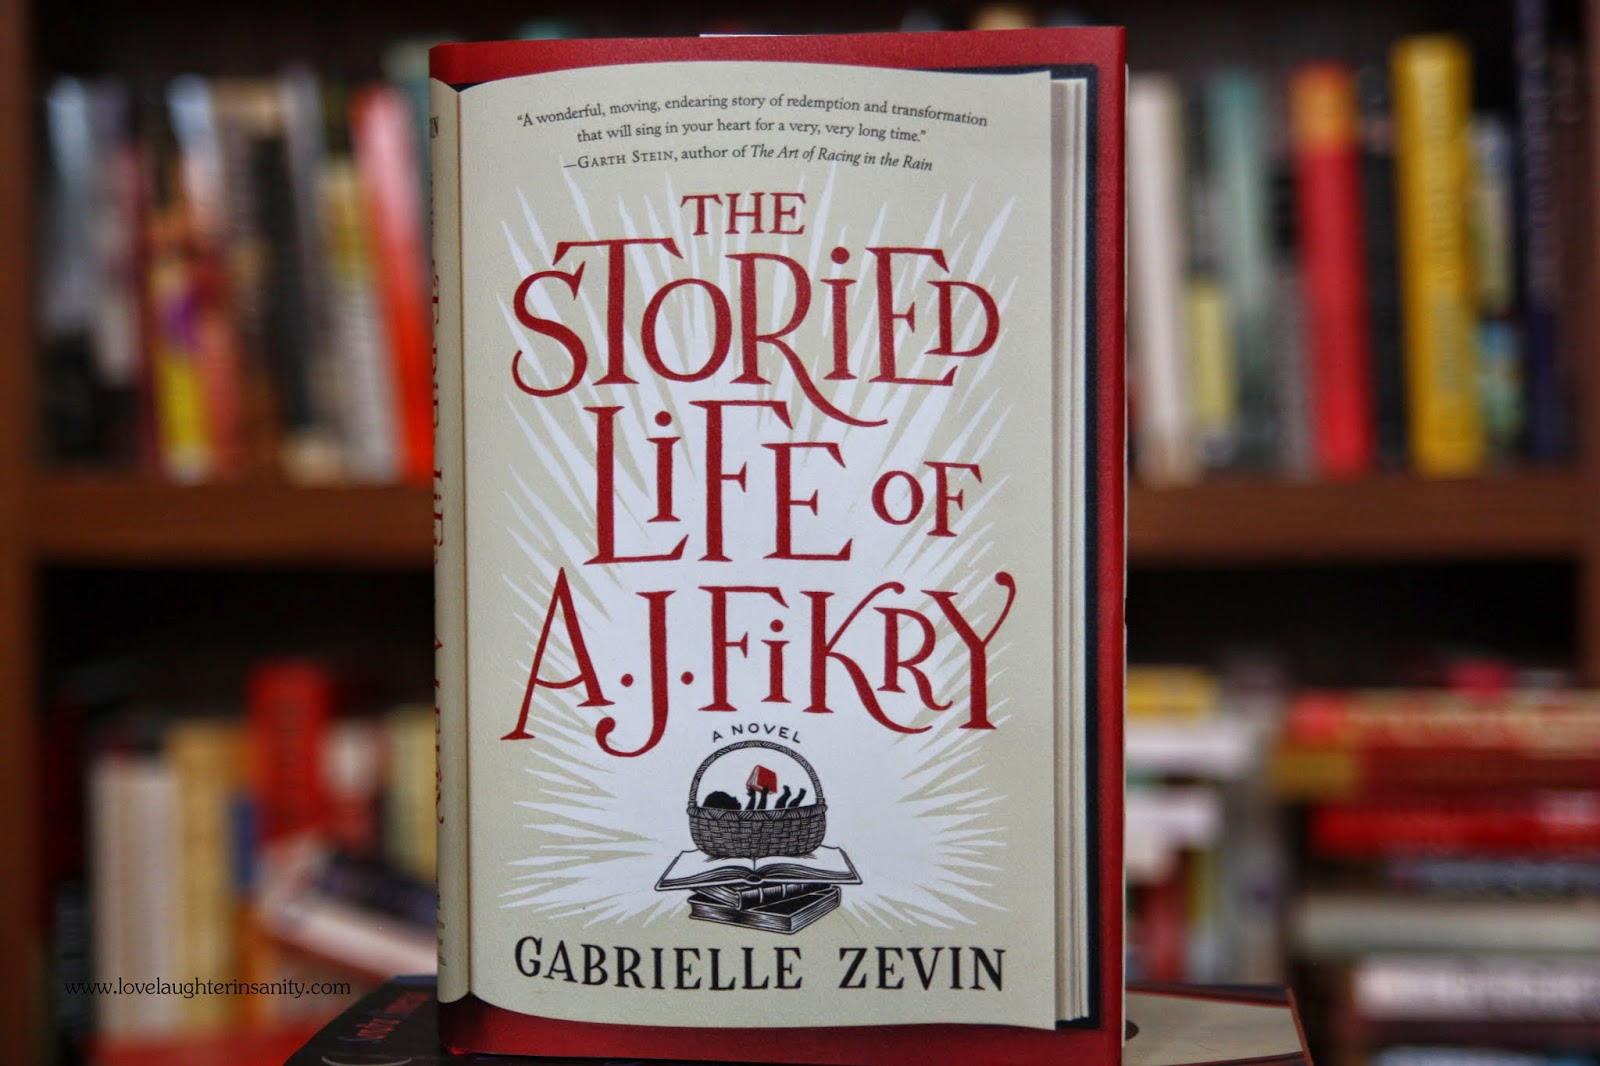 The Storied Life of A.J. Fikry – Gabrielle Zevin